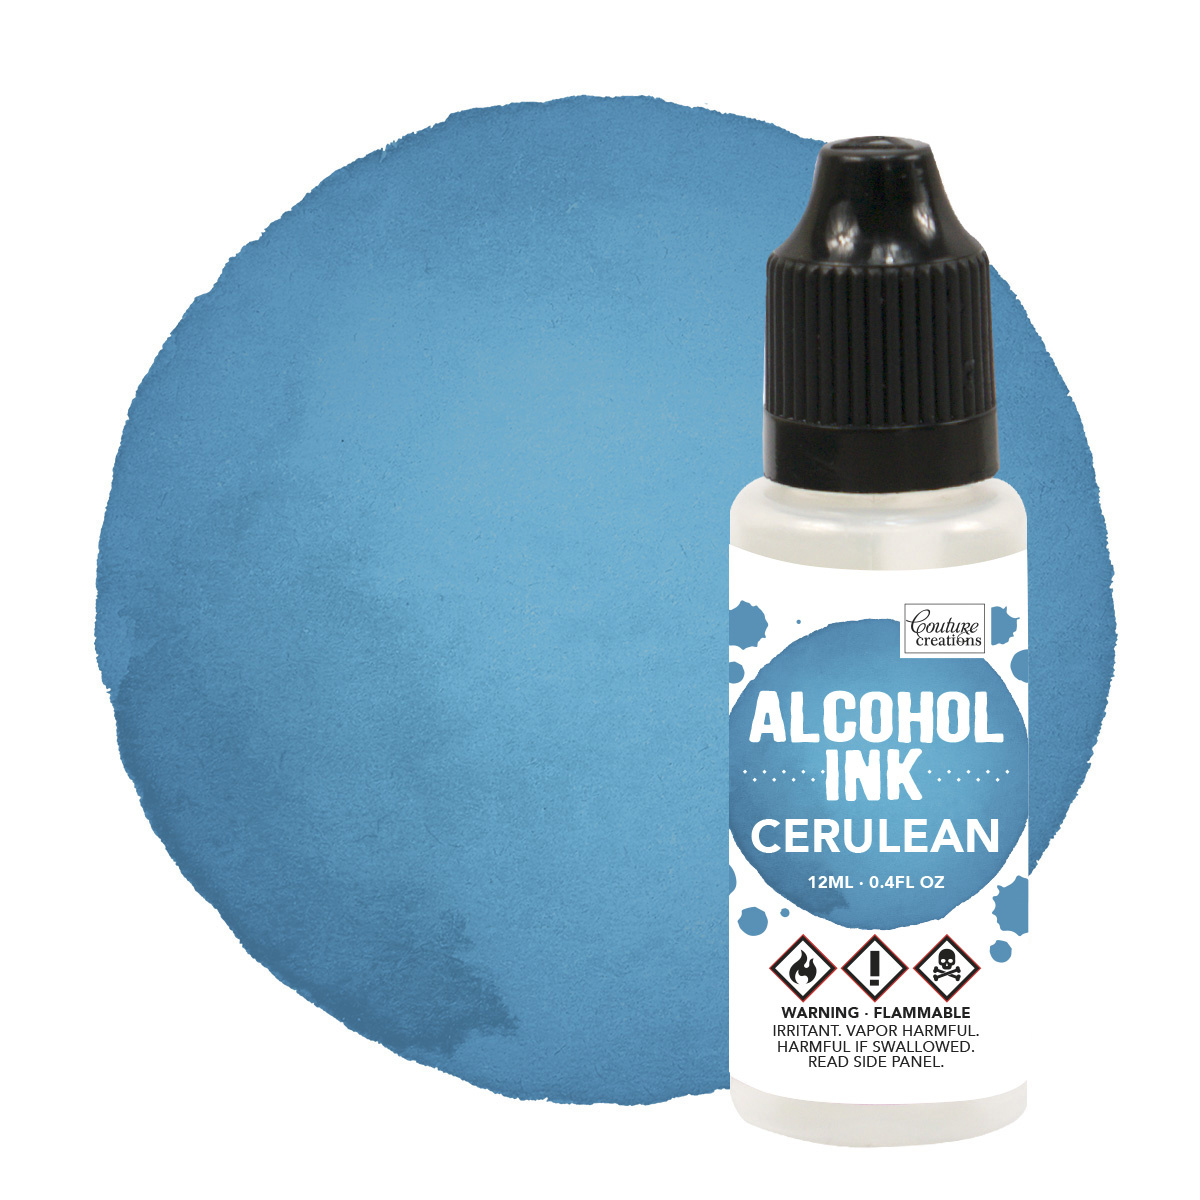 Couture Creations - Alcohol Ink 12ml (flere varianter)